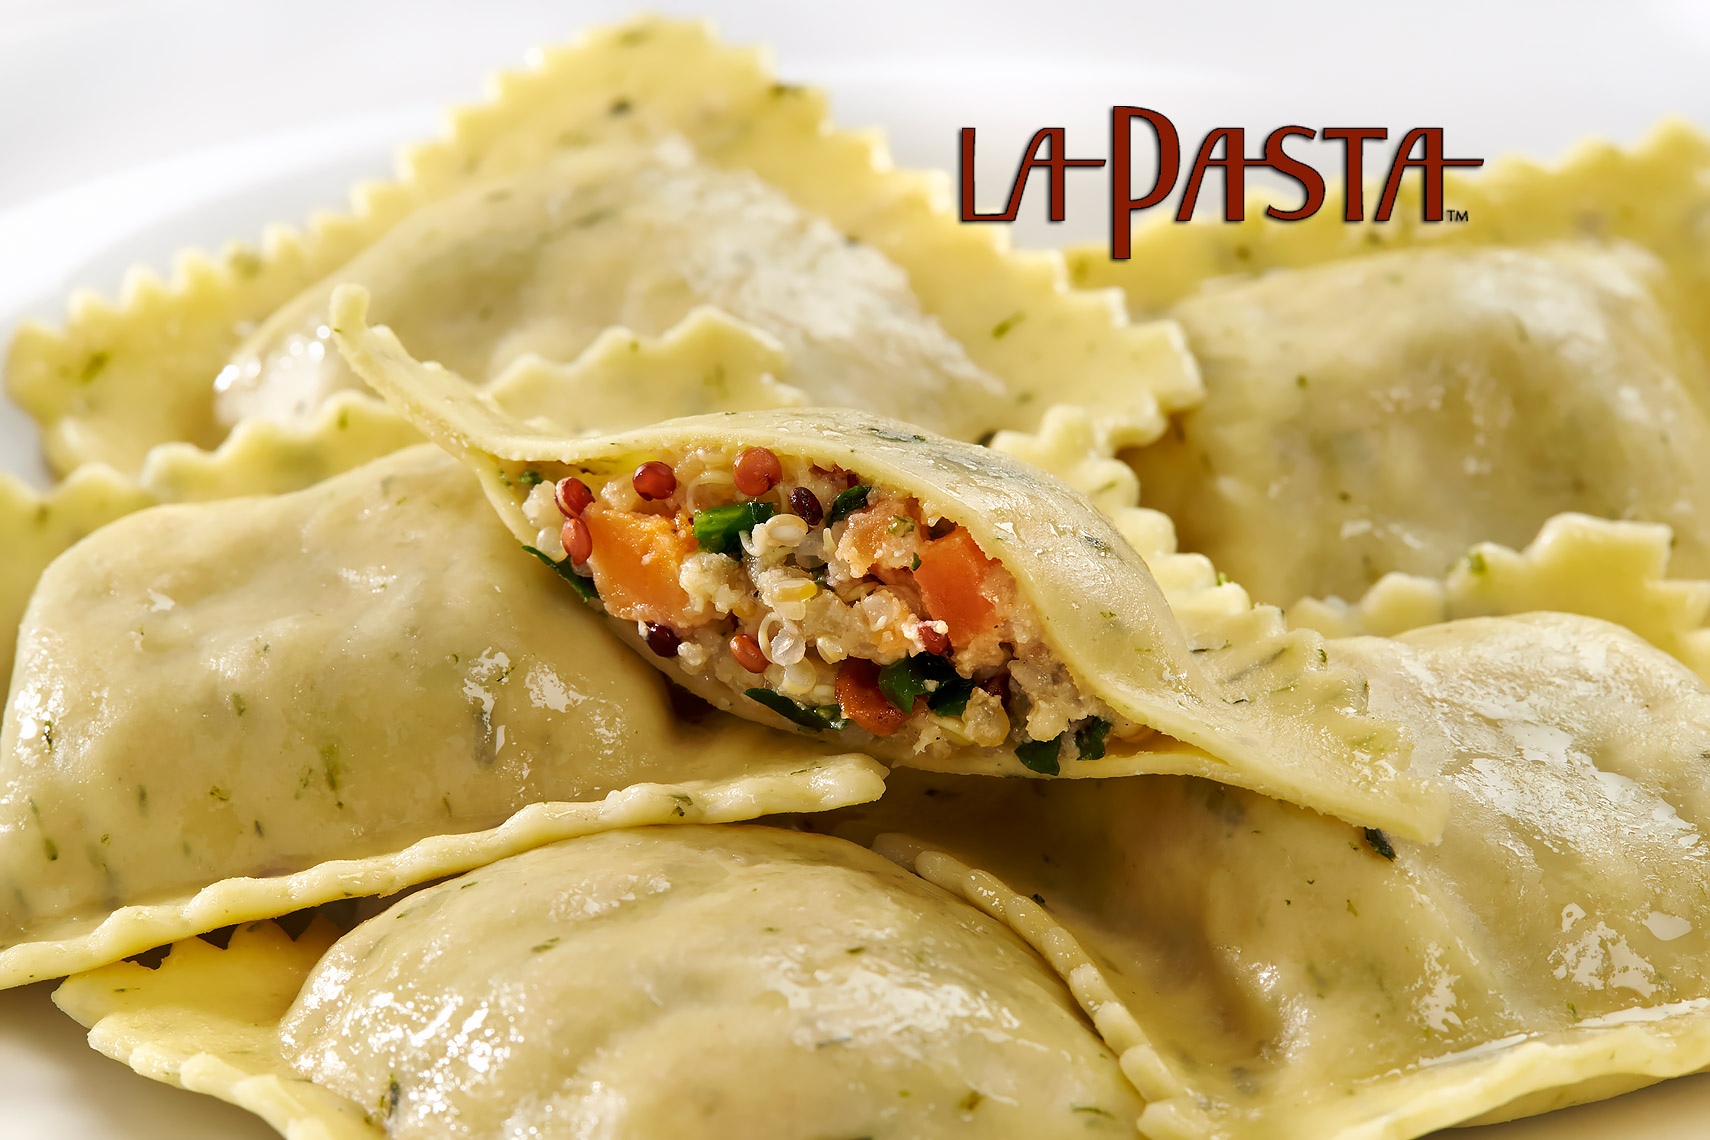 ADVERTISE-Culinary34-La-Pasta